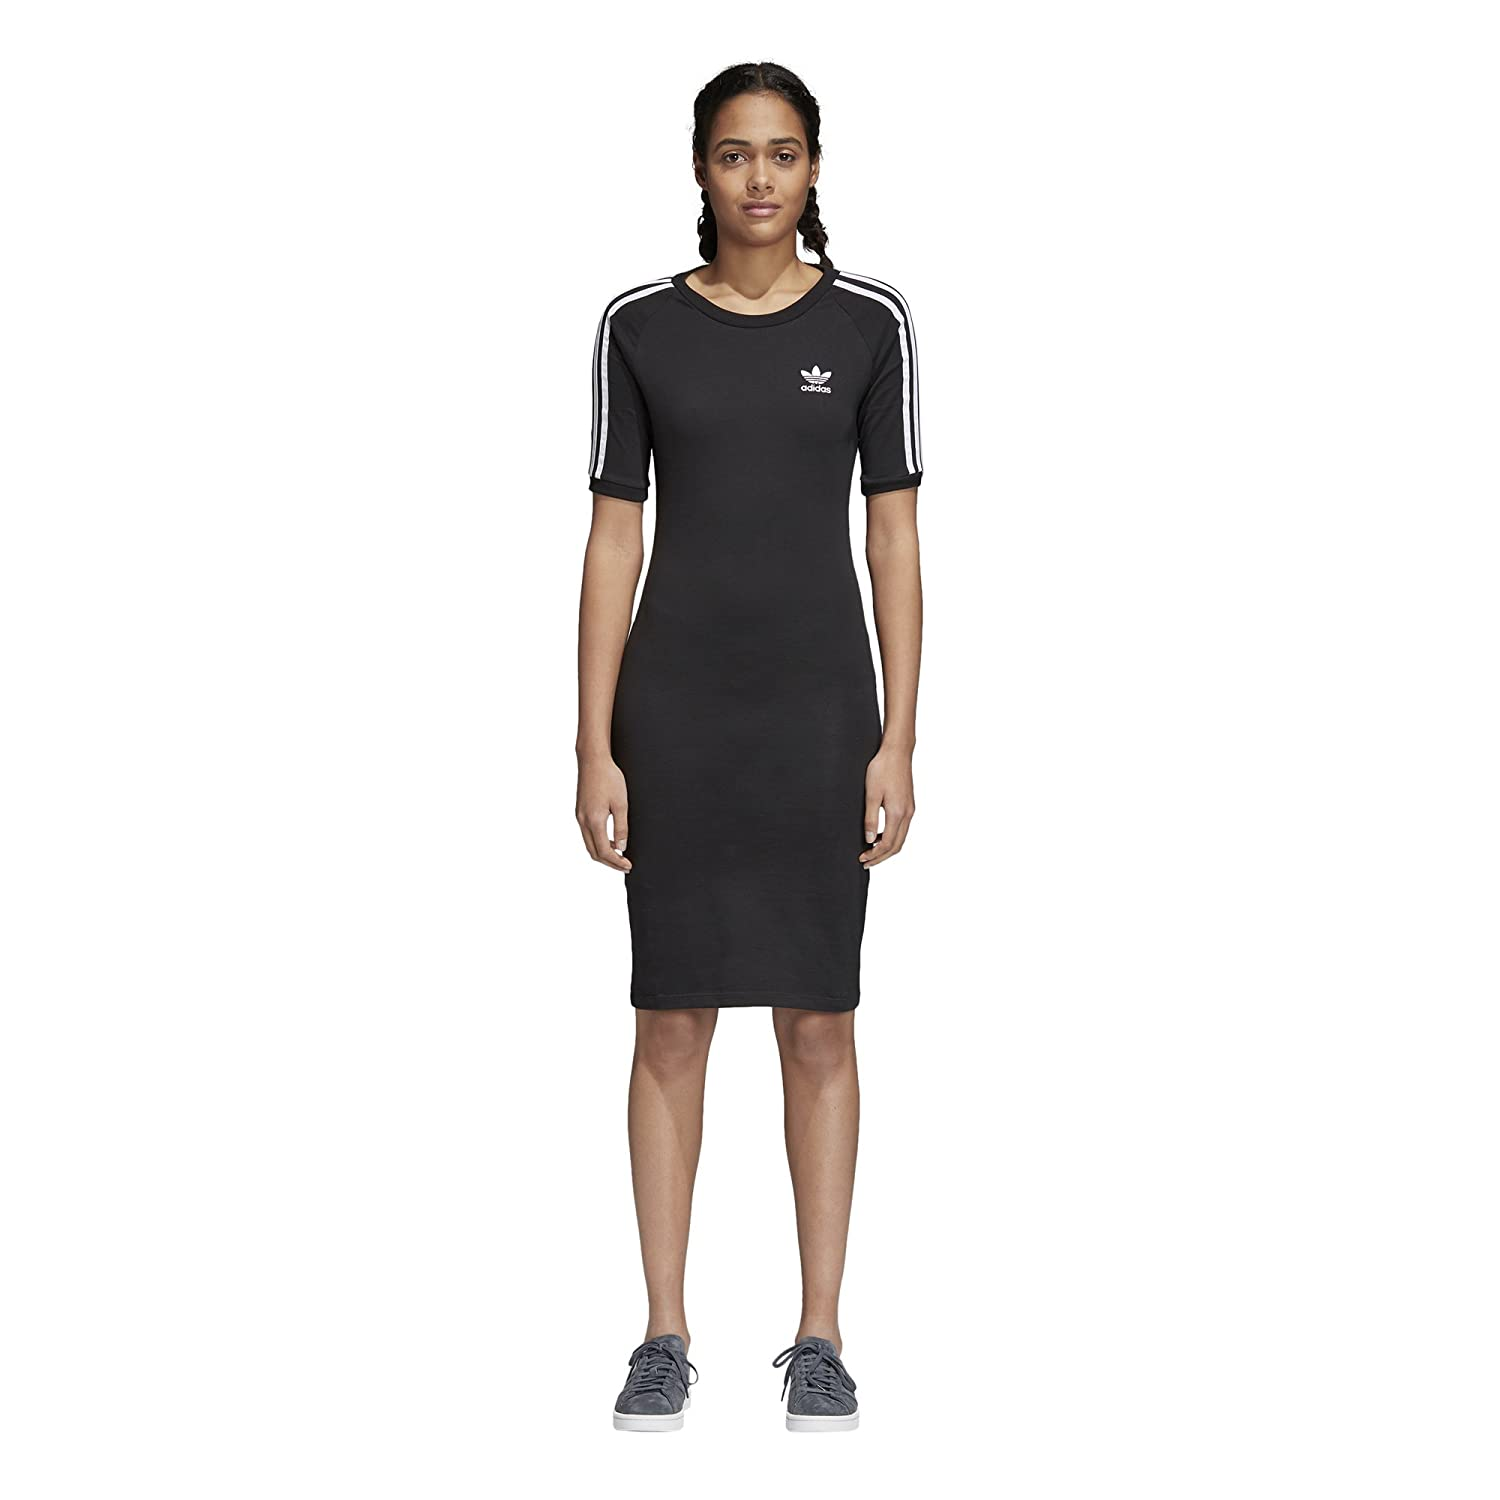 adidas Originals Womens Standard 3-Stripes Dress CY4748